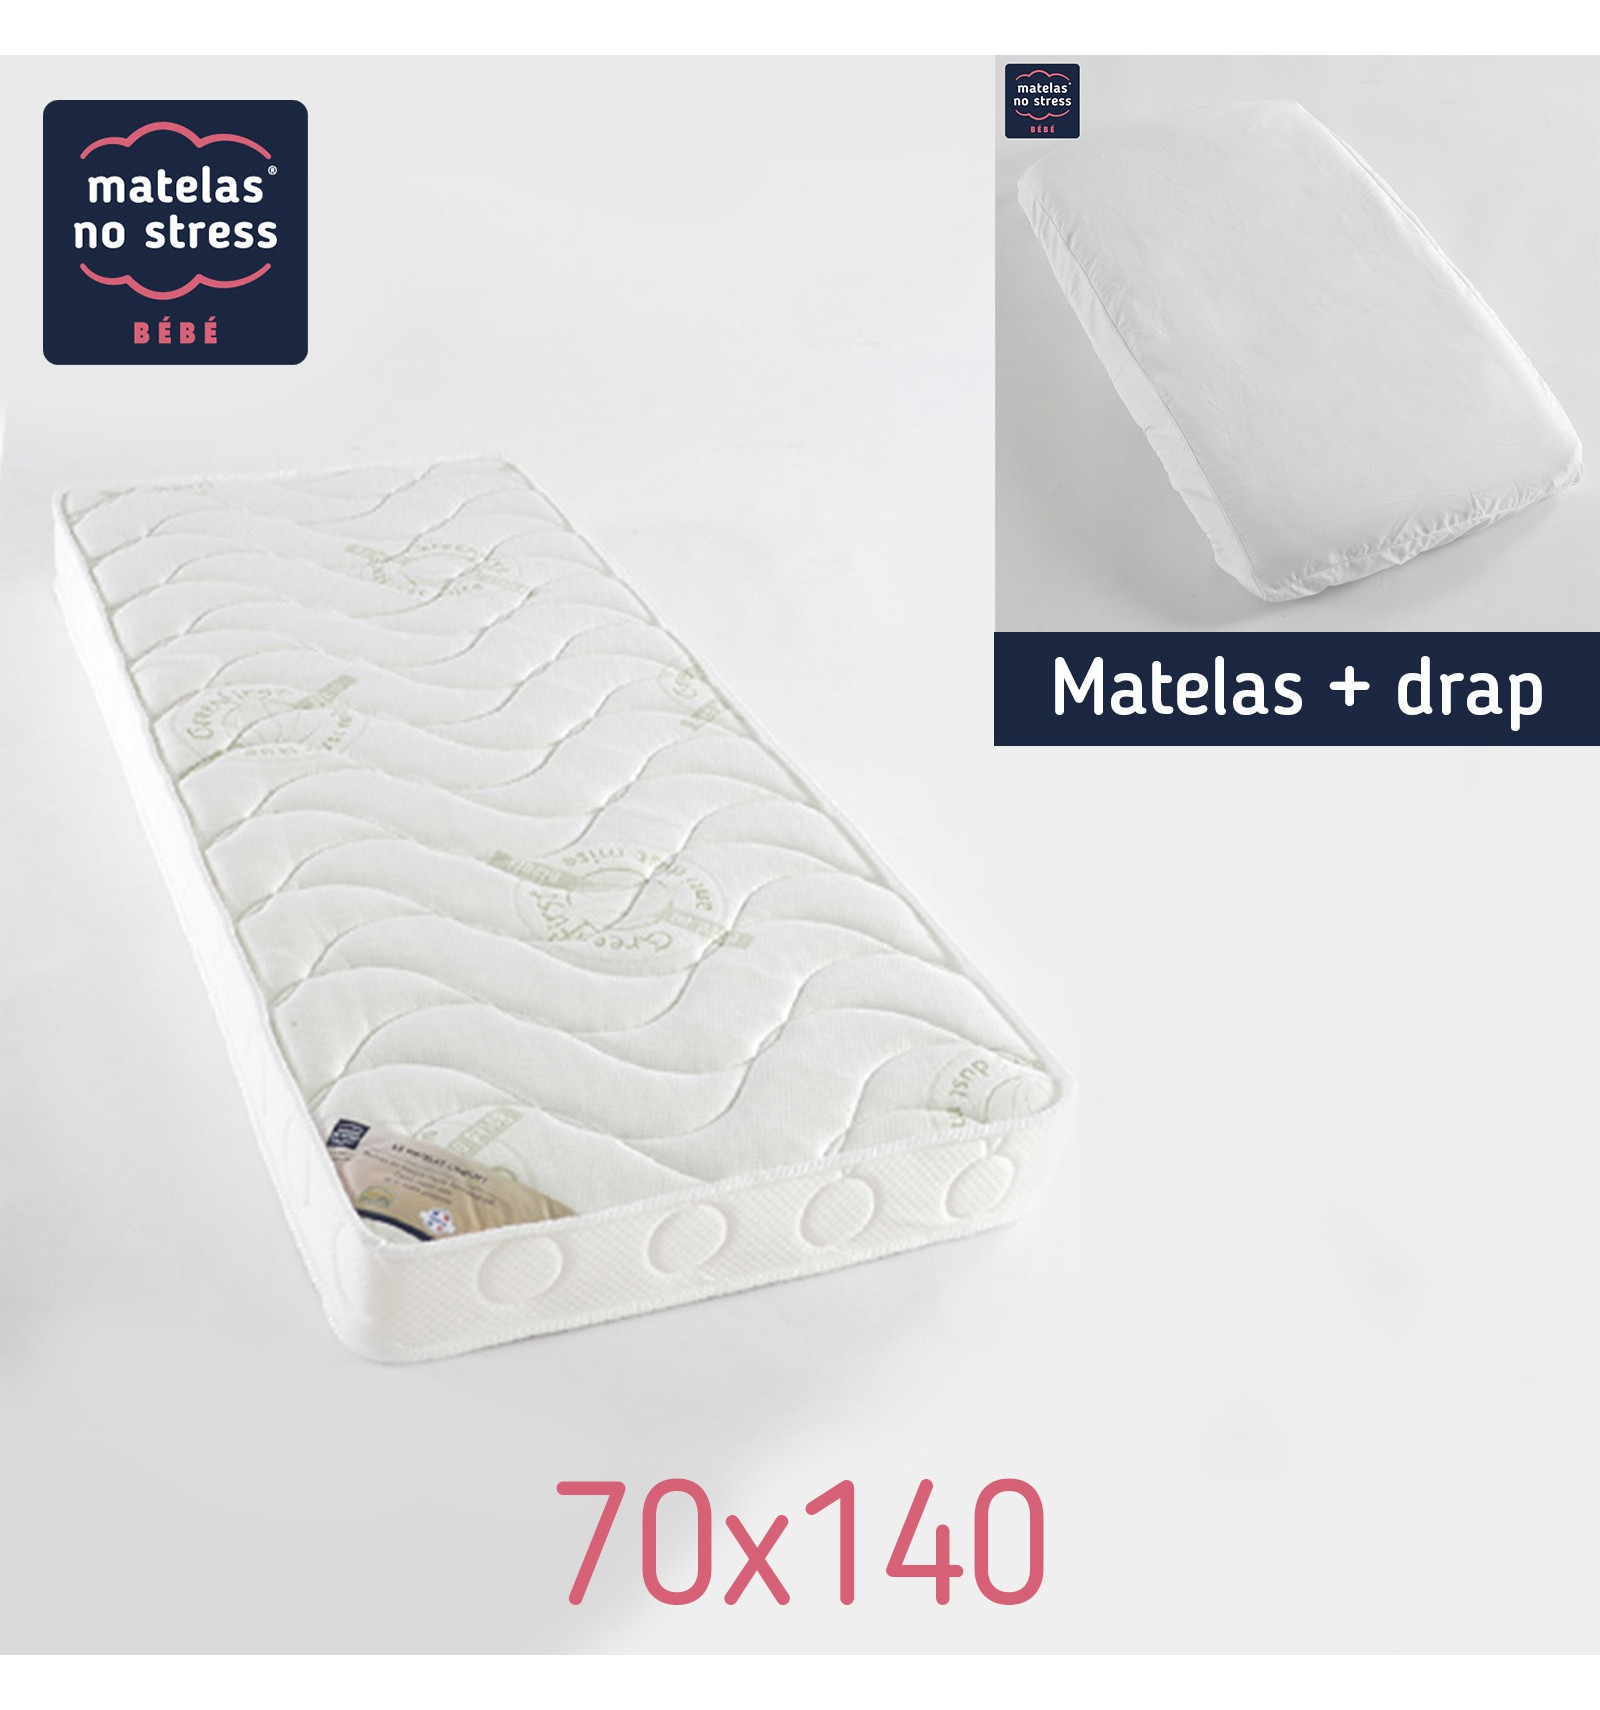 matelas 70x140 confort anti acariens et drap housse couffin matelas. Black Bedroom Furniture Sets. Home Design Ideas